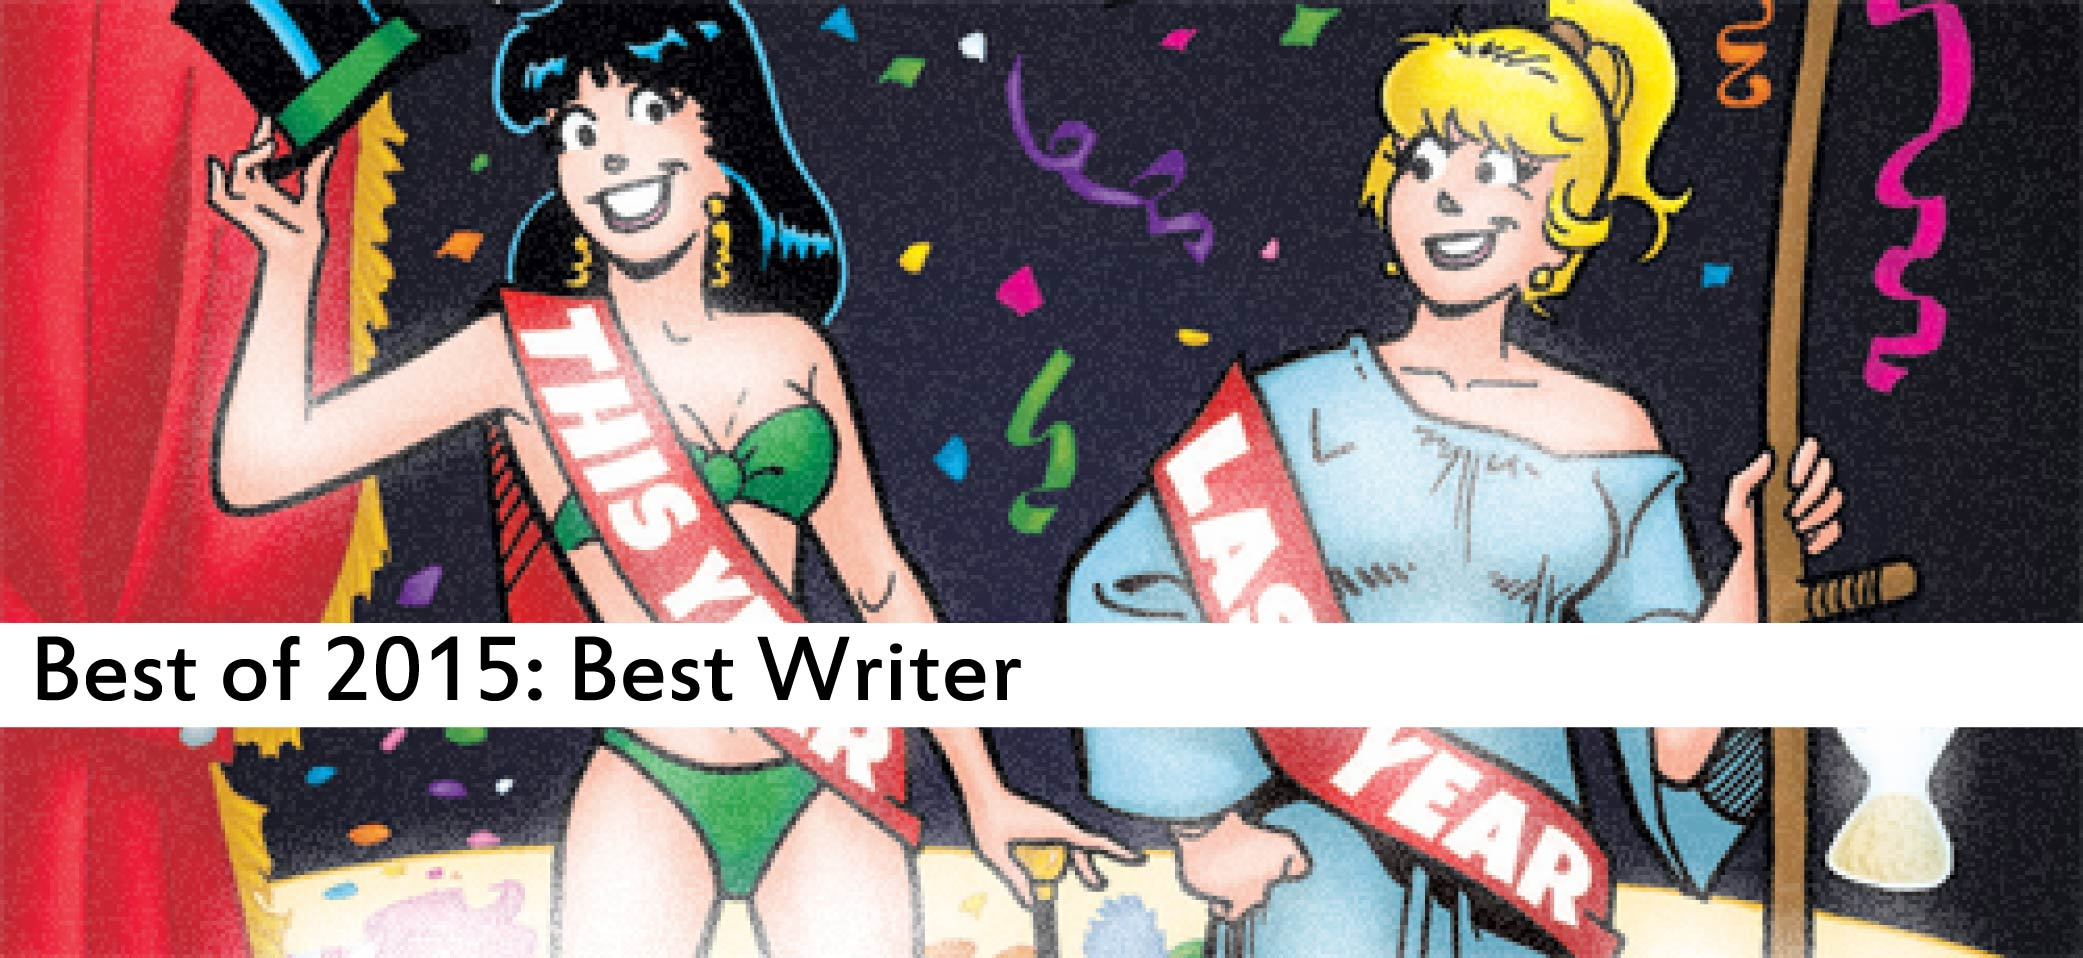 best of best writers retcon punch best writer 2015